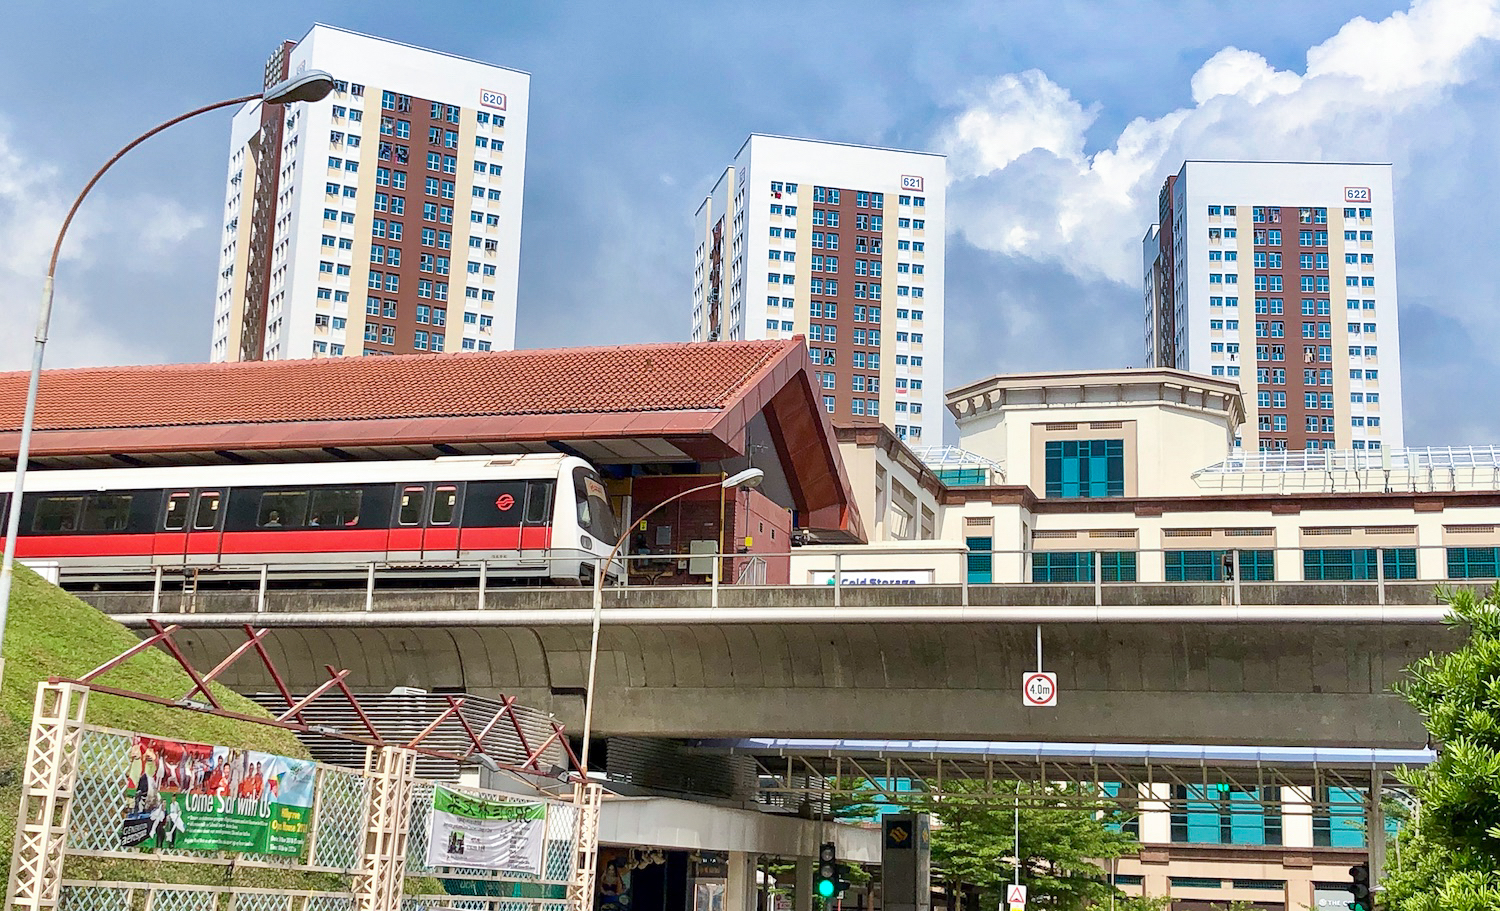 The up-and-coming Bukit Batok West station along the Jurong Region Line is just minutes away on foot from Le Quest